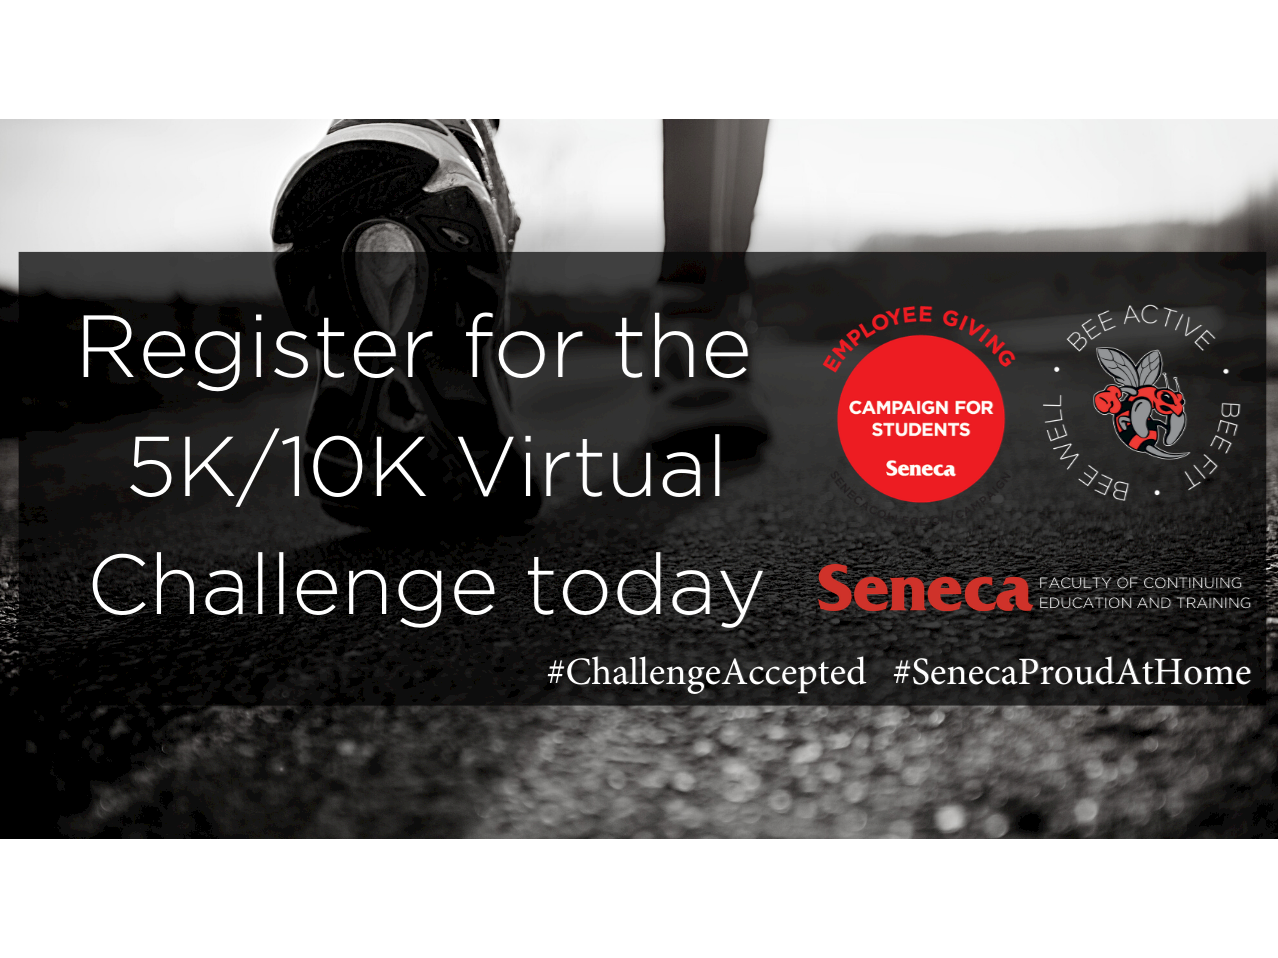 There is still time to register for the 5K/10K Virtual Challenge